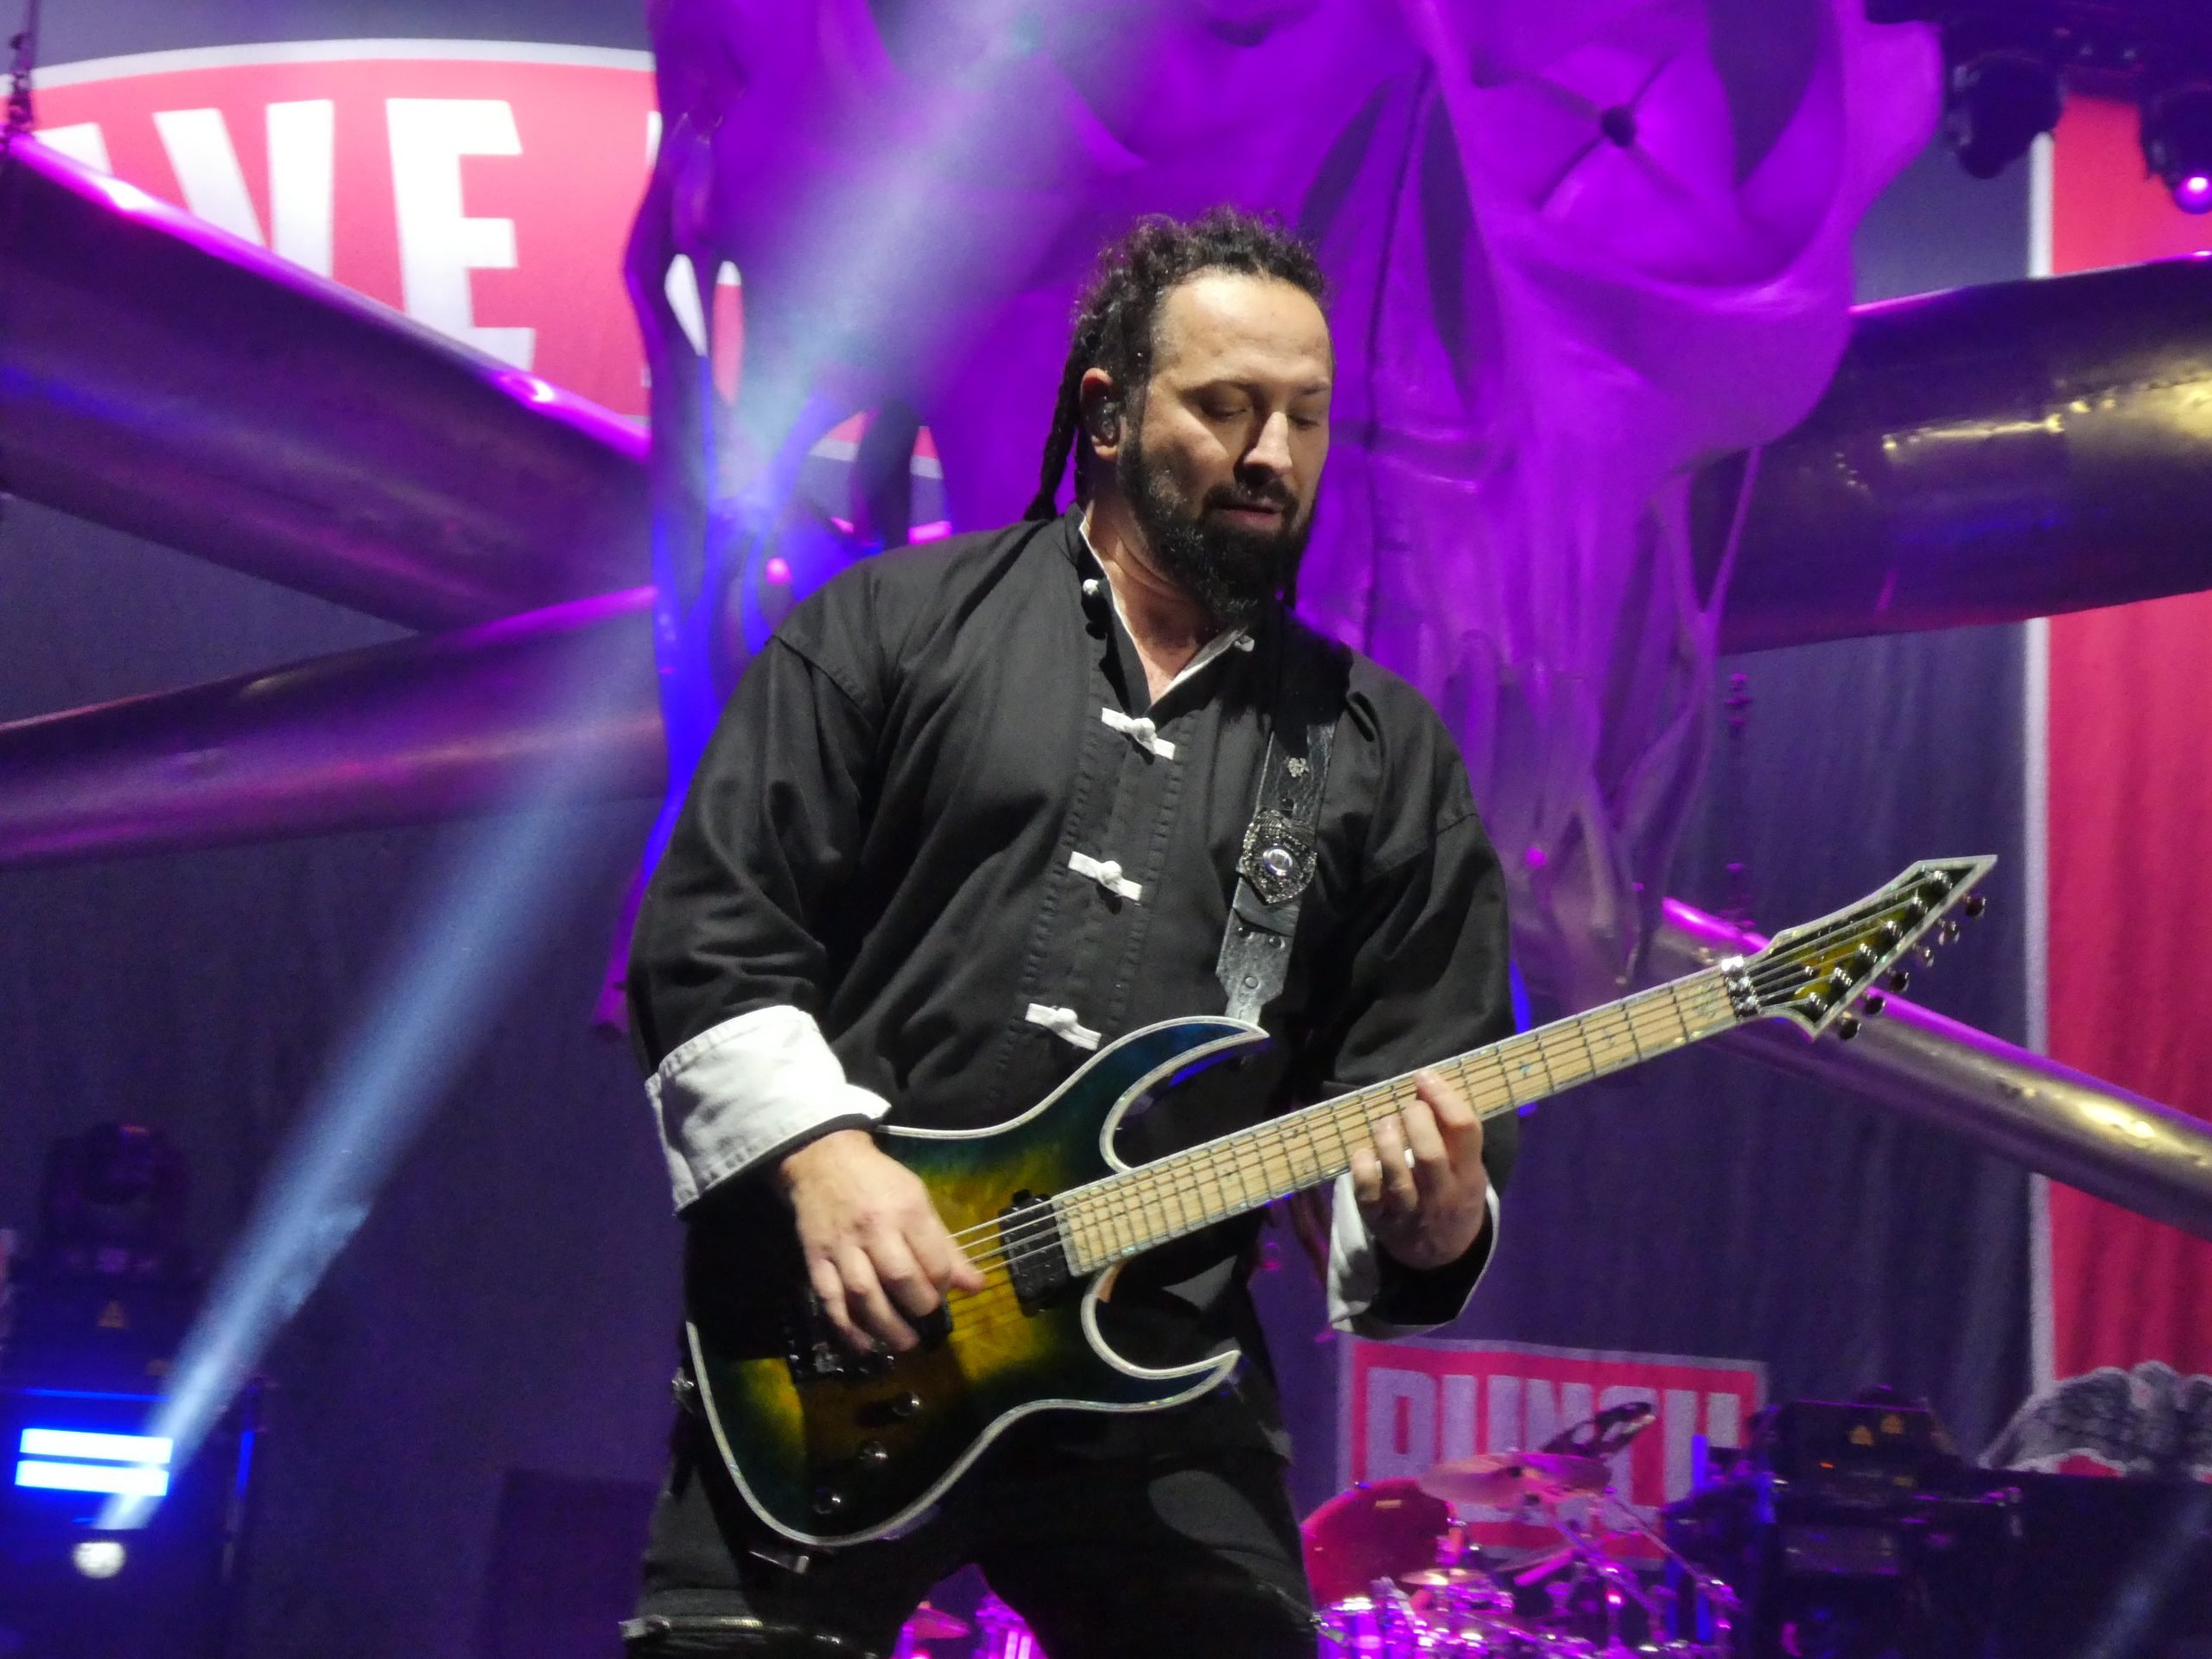 Zoltan Bathory on stage at a 5FDP show in Cardiff at the Motorpoint Arena in 2020